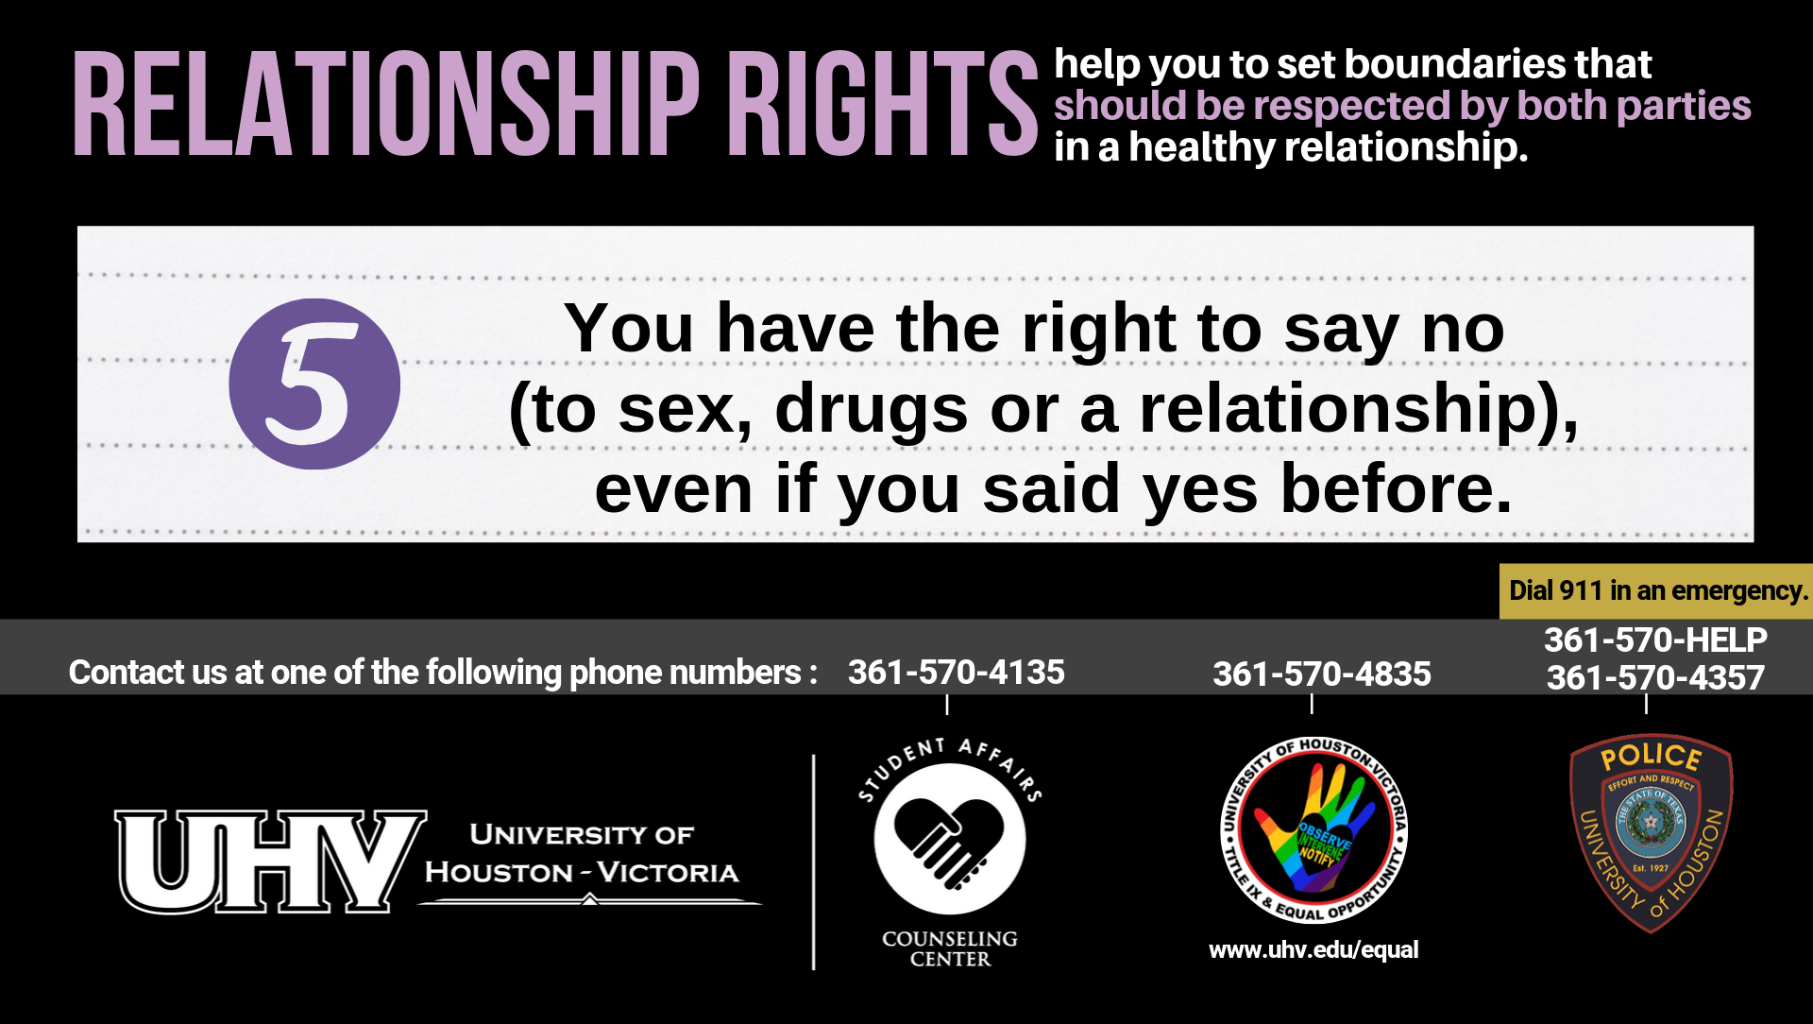 Relationship Rights help you to set boundaries that should be respected by both parties in a healthy relationship. 5. You have the right to say no (to sex, drugs or a relationship), even if you said yes before. University of Houston-Victoria Title IX and Equal Opportunity Logo (rainbow hand with heart insert with words Observe, Intervene, Notify).